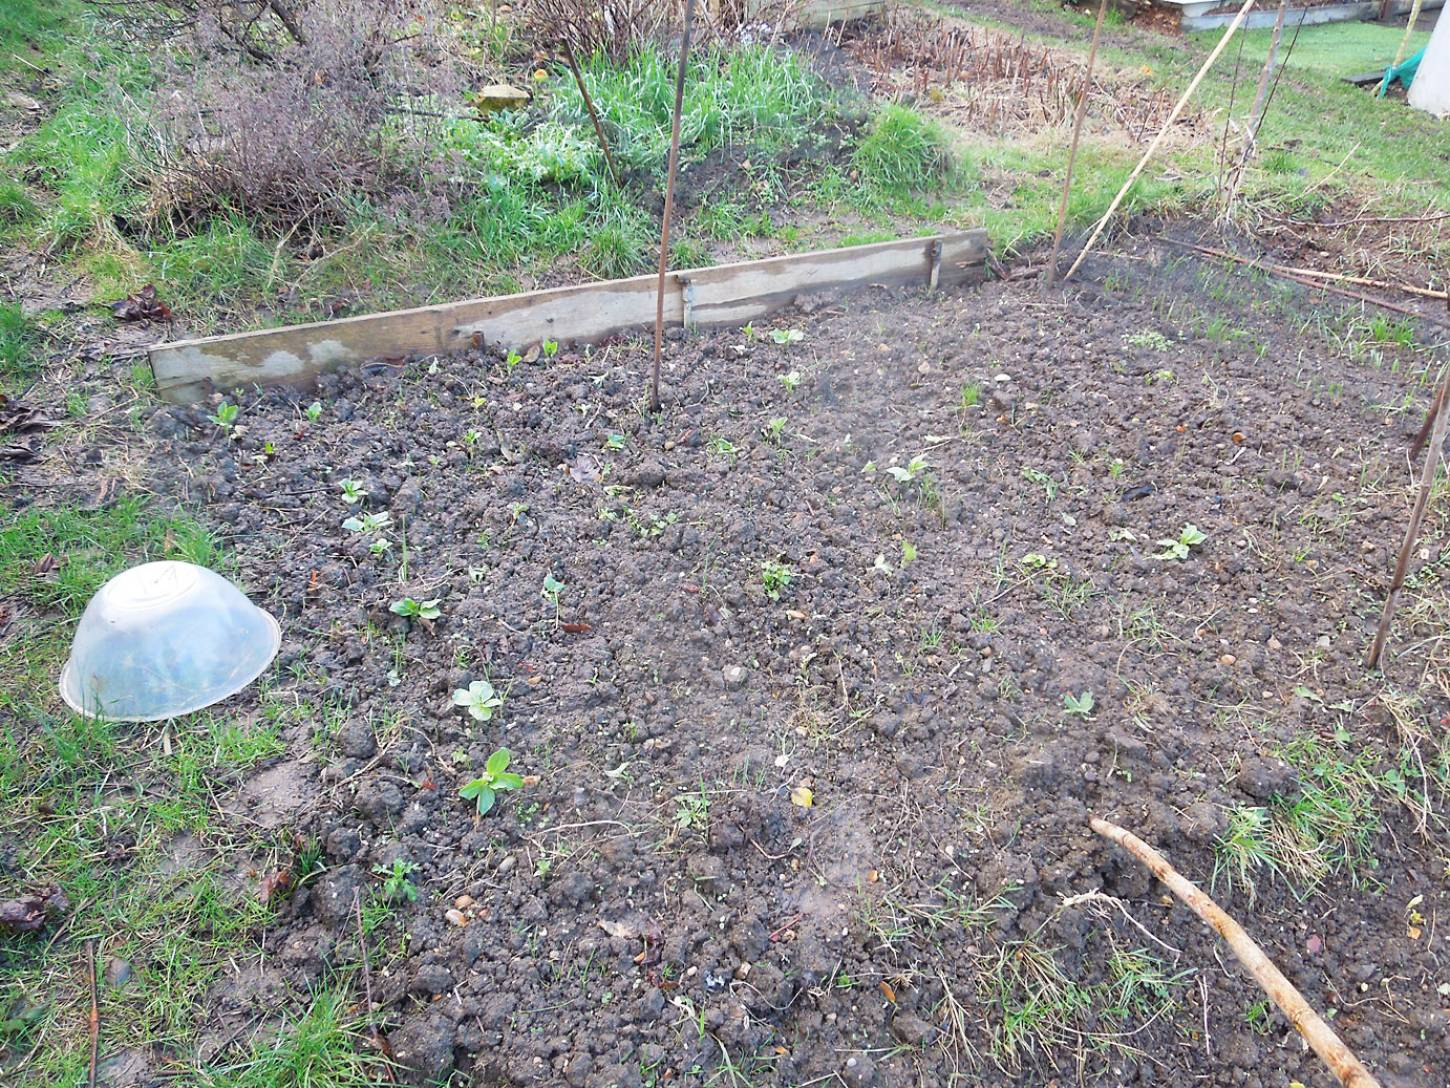 allotment review Jan. '17 - 4:07pm&nbsp;14<sup>th</sup>&nbsp;Jan.&nbsp;'17